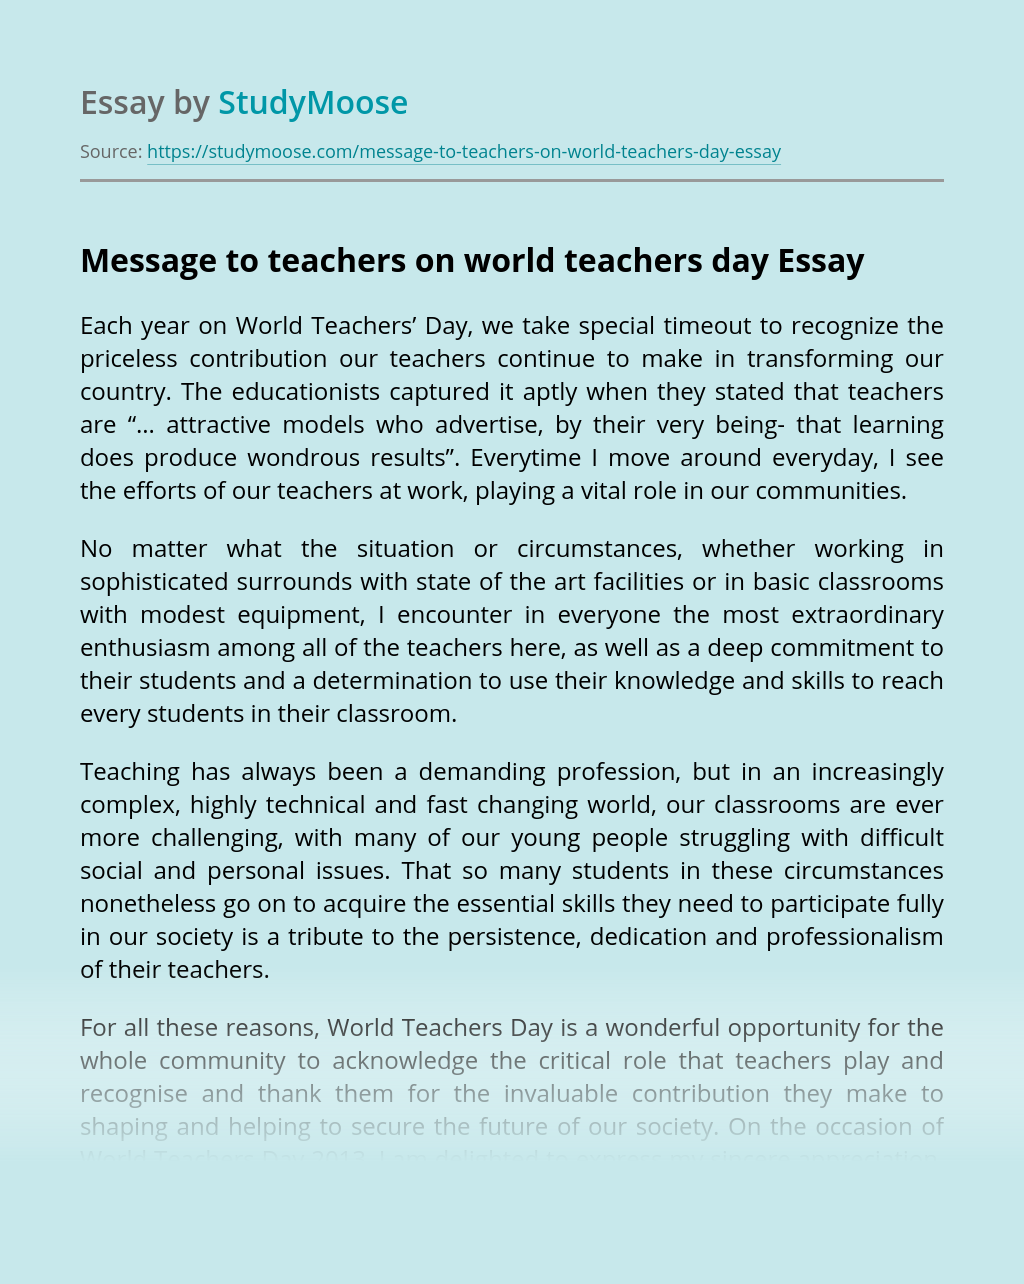 Message to teachers on world teachers day